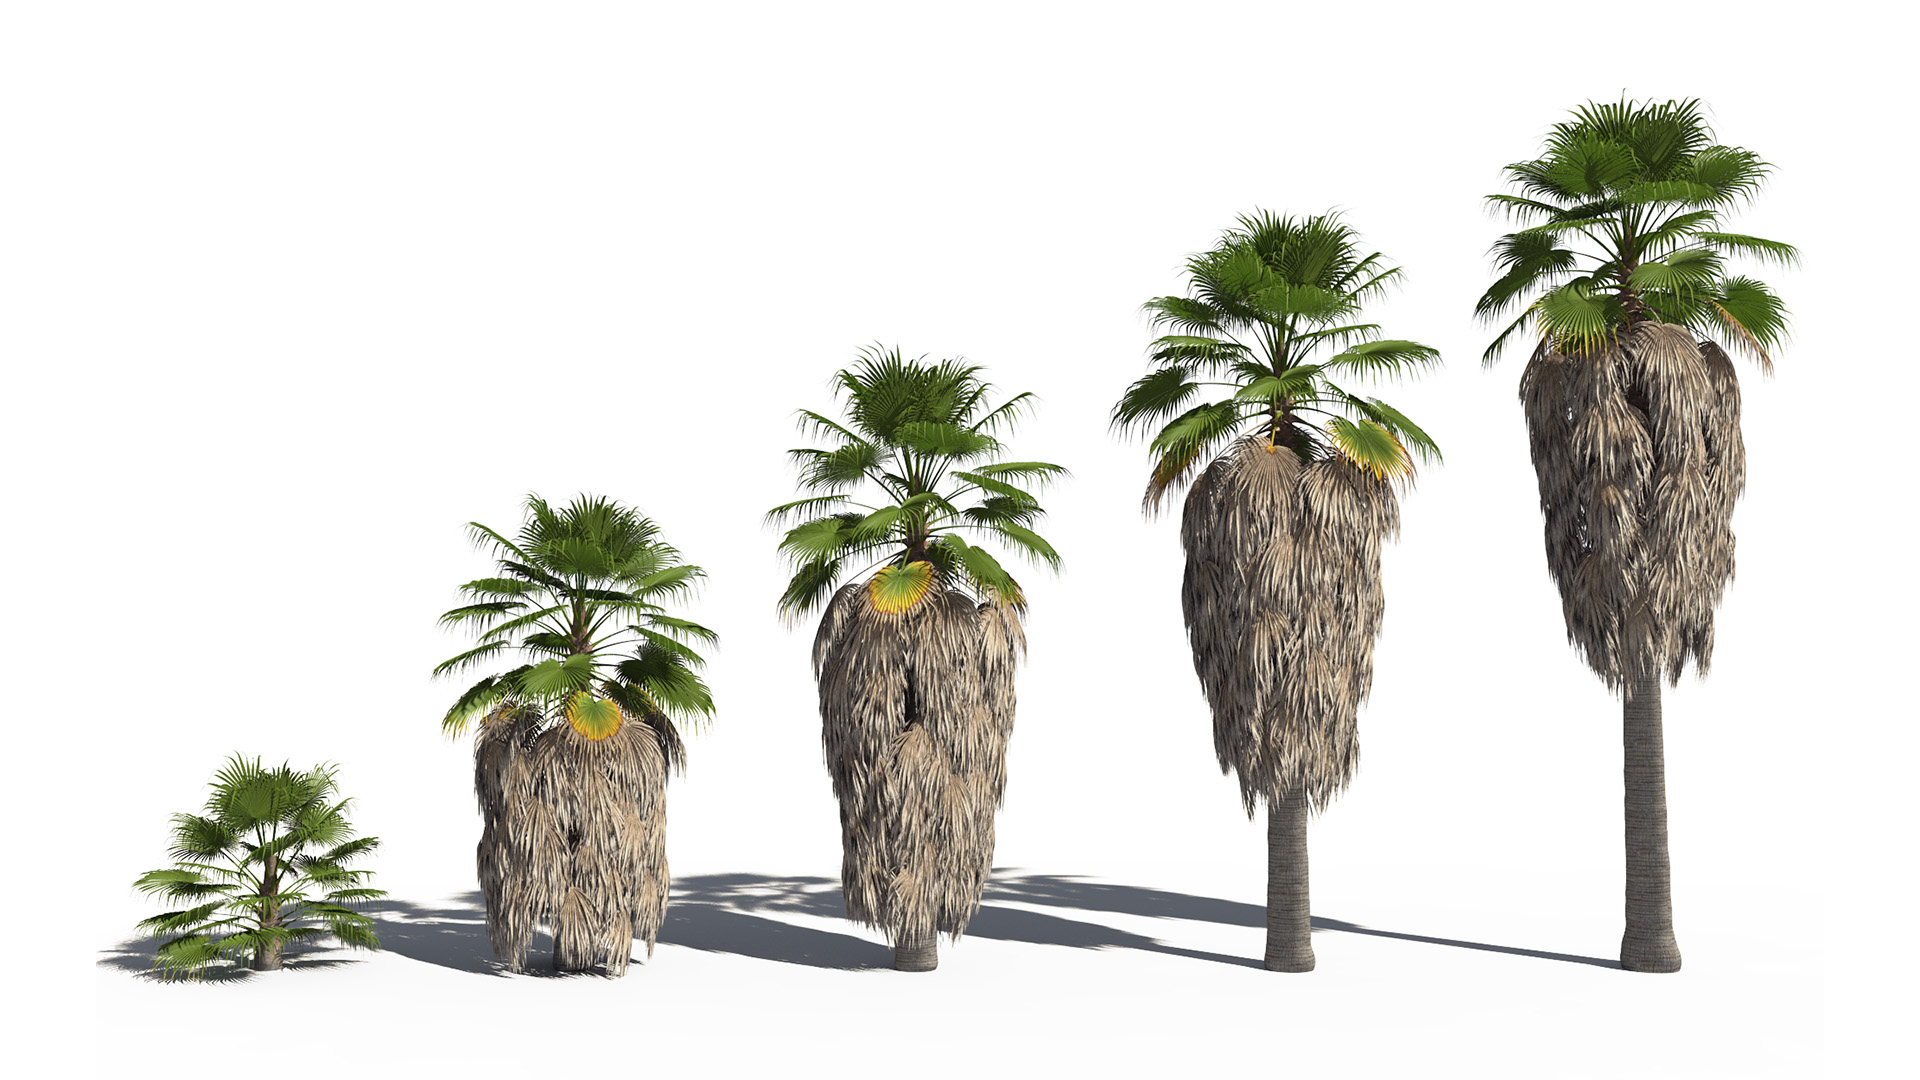 3D model of the California fan palm Washingtonia filifera maturity variations